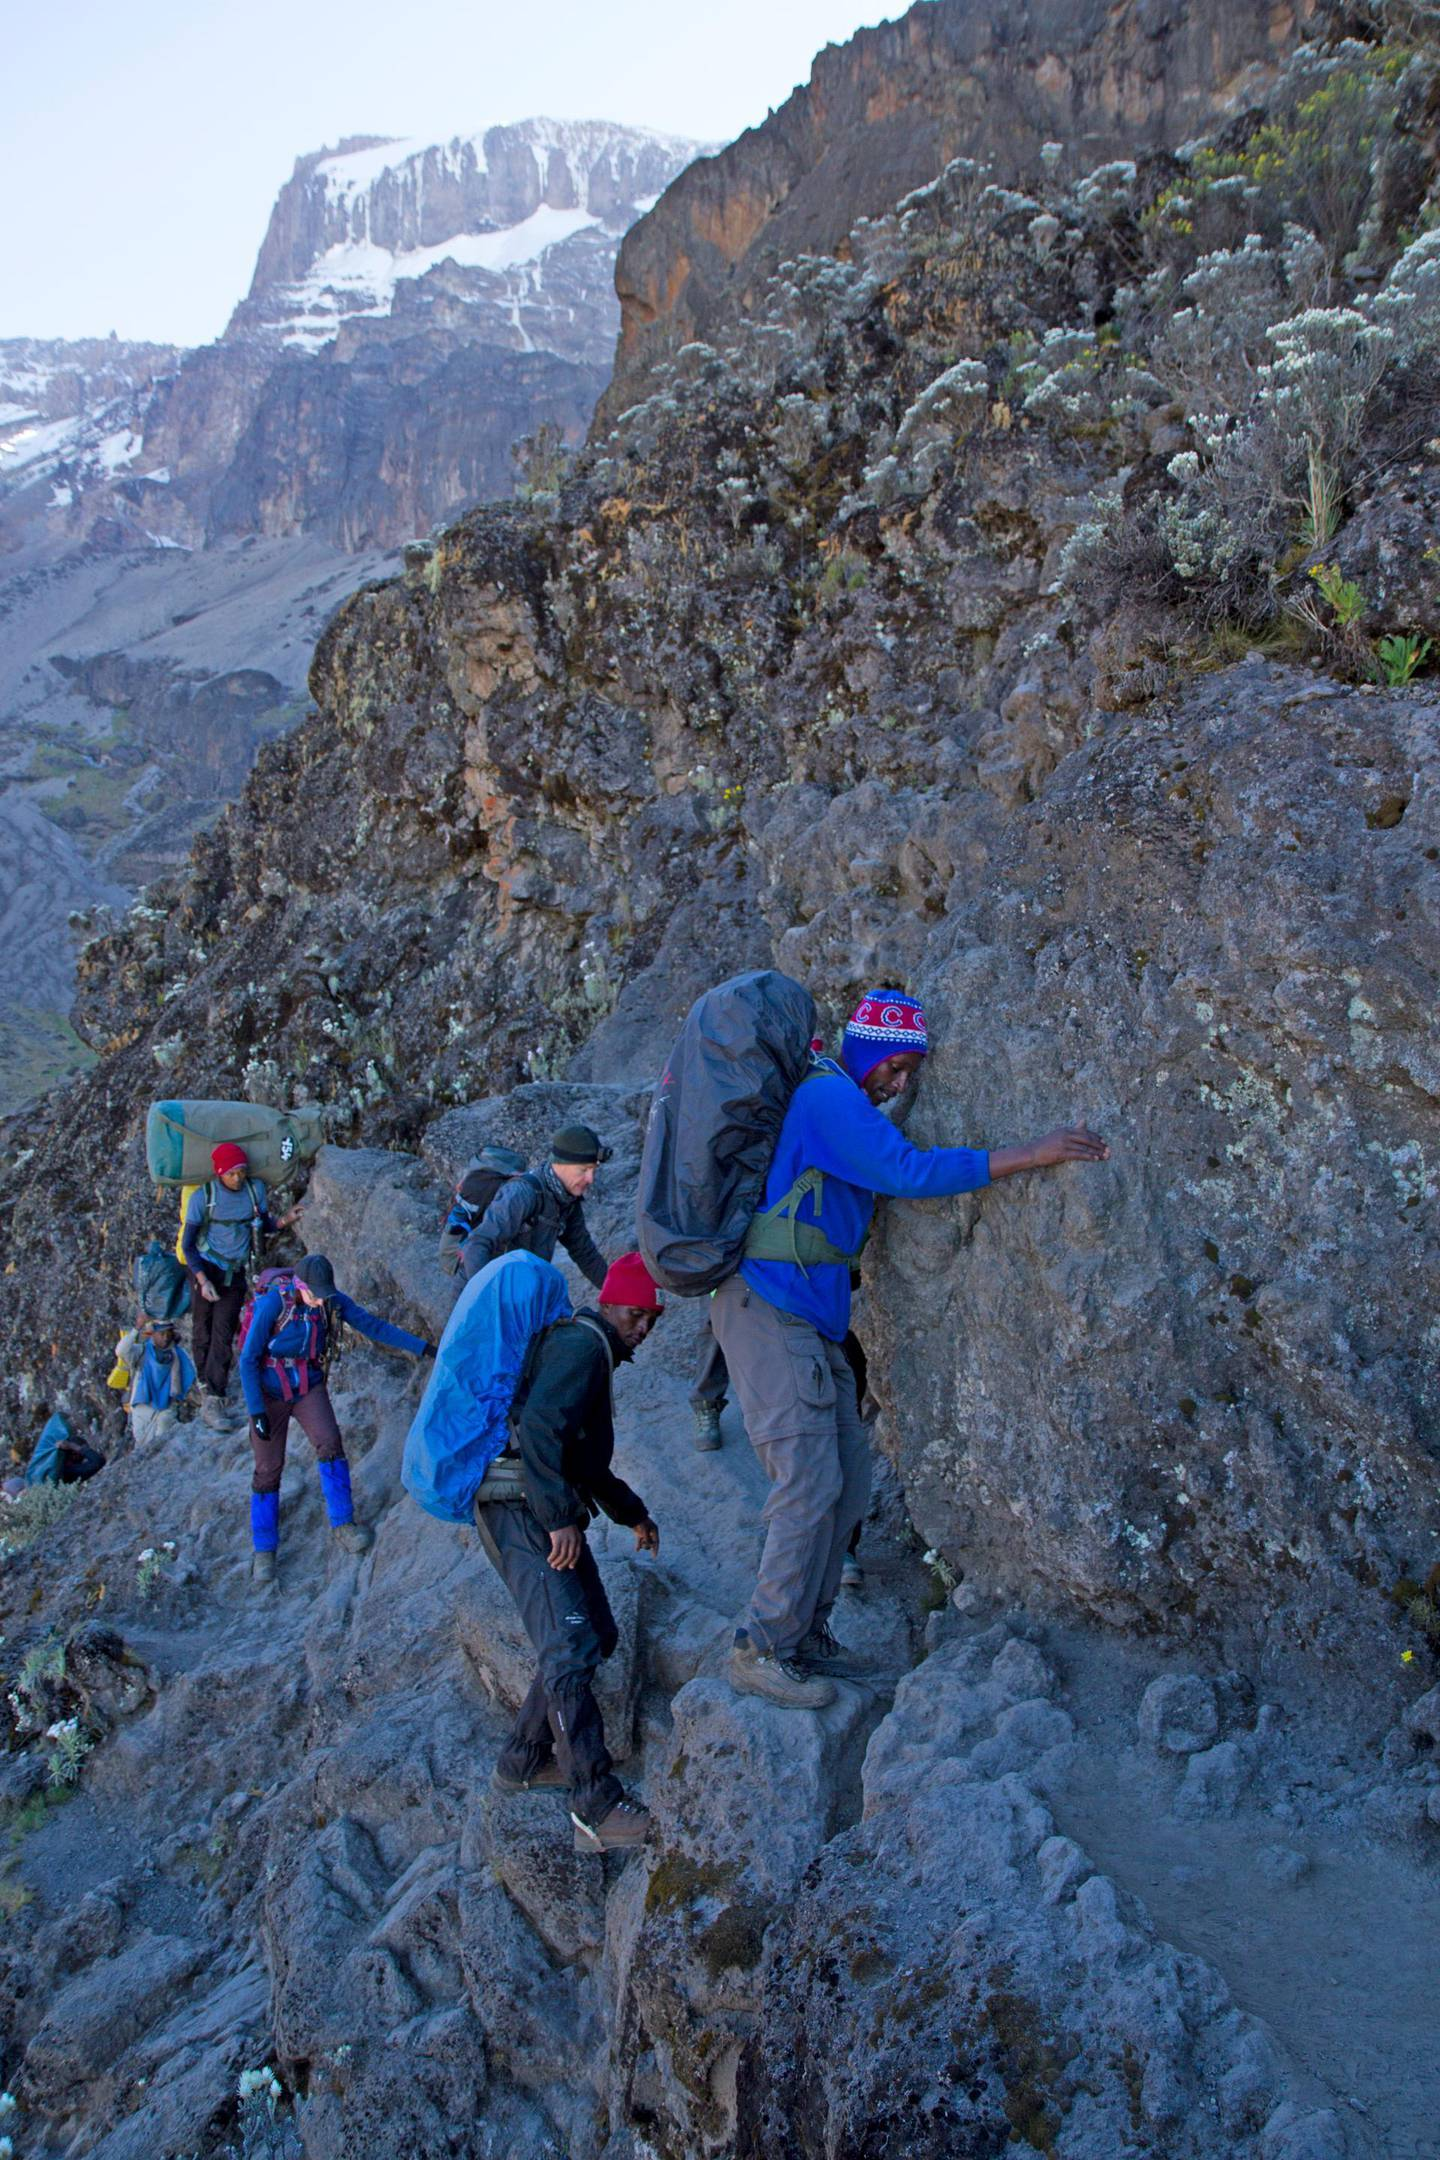 Mt Kilimanjaro National Park, Tanzania, July 1 2017: A group of trekkers inches around the so-called Kissing Rock on the tricky Barranco Wall section of trail on Mt Kilimanjaro. Getty Images